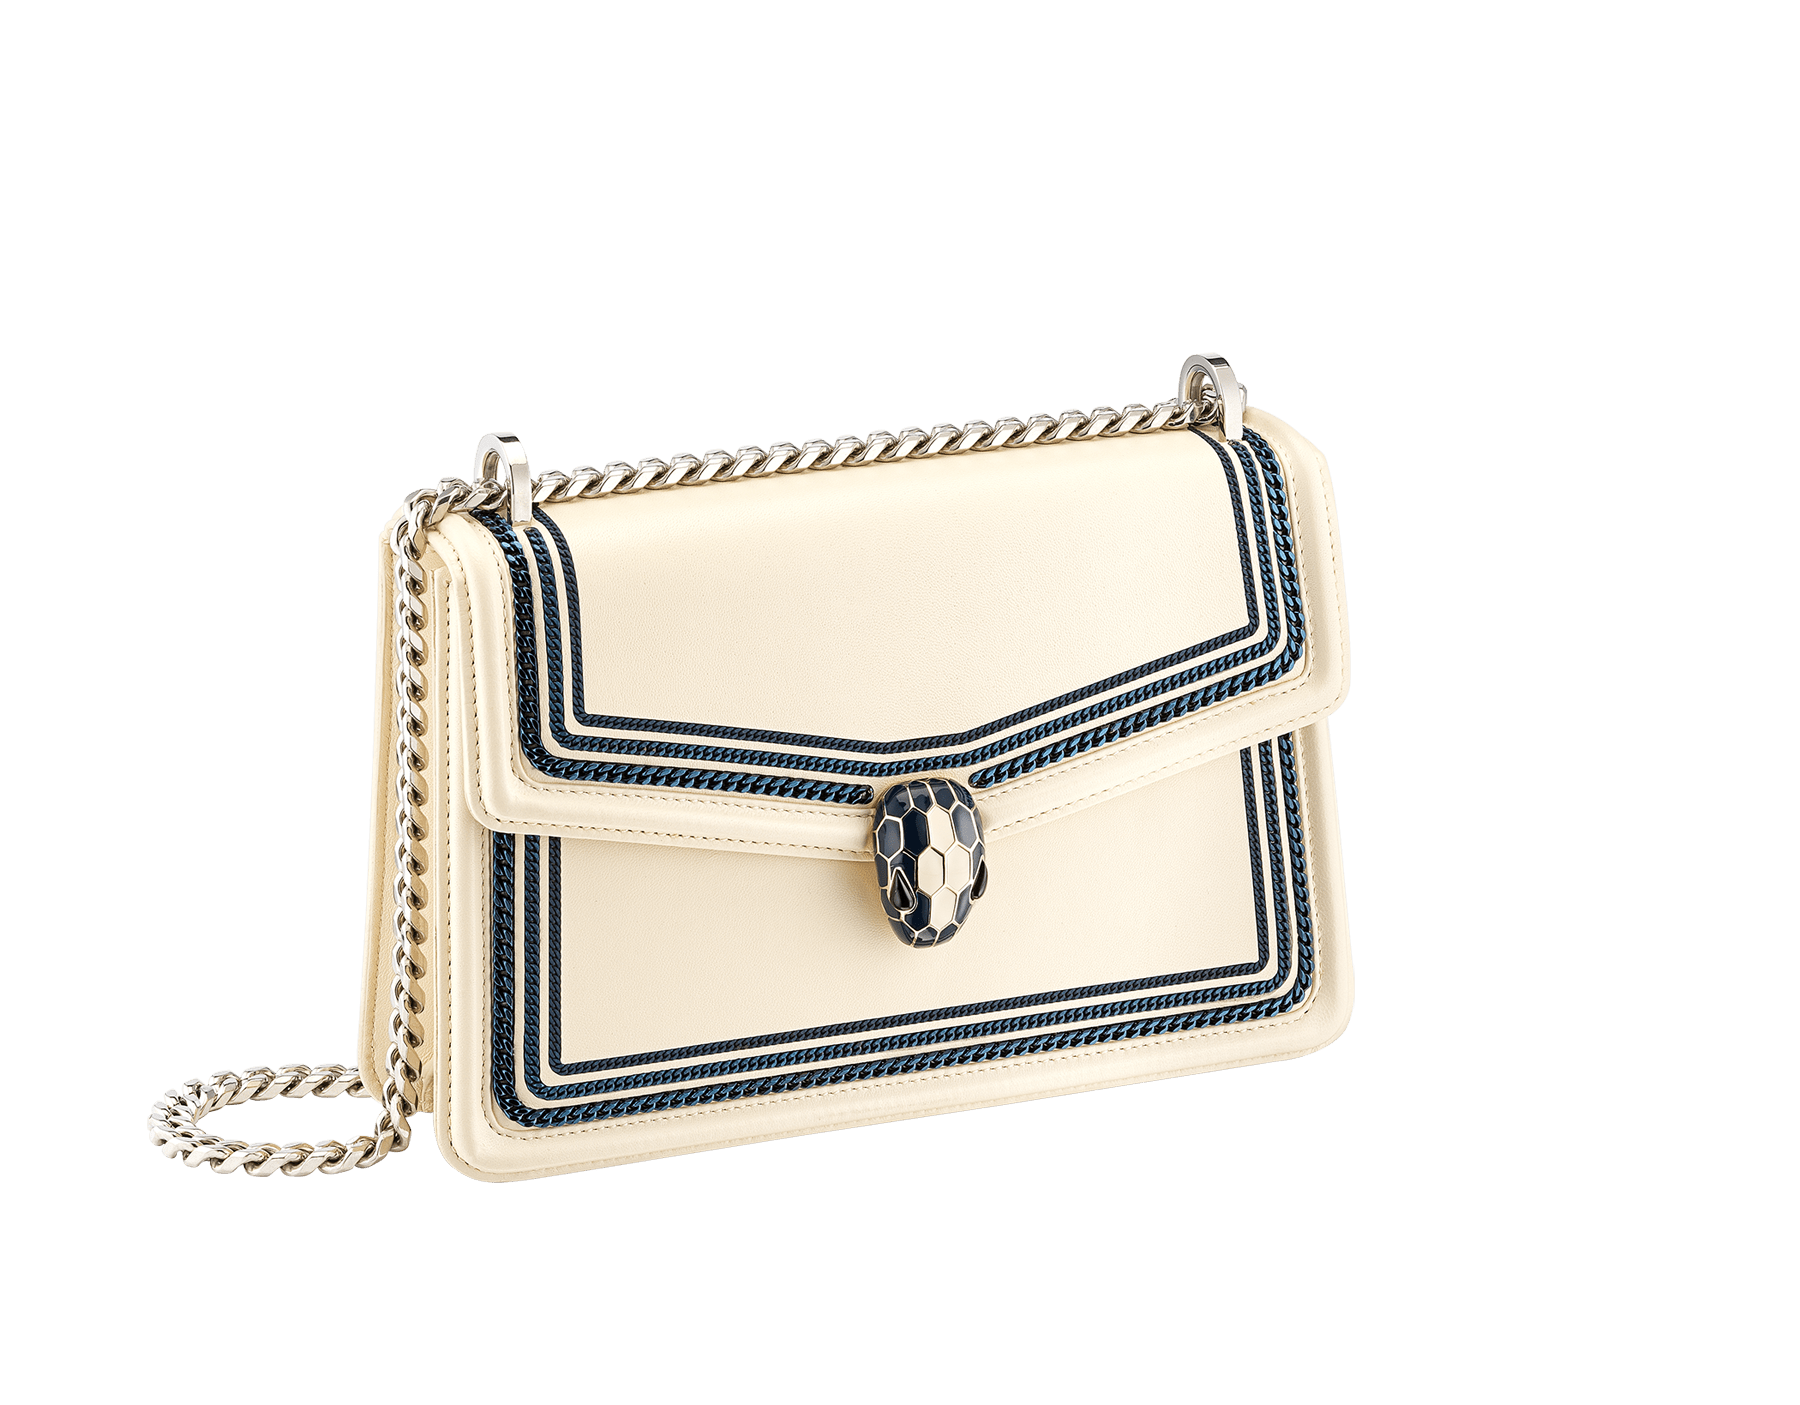 """""""Serpenti Diamond Blast"""" shoulder bag in Ivory Opal white smooth calf leather, featuring a Teal Topaz green 3-Maxi Chain motif, and an Aquamarine light blue nappa leather internal lining. Tempting snakehead closure in palladium-plated brass, embellished with Teal Topaz green and Ivory Opal white enamel, and black onyx eyes. 291173 image 4"""